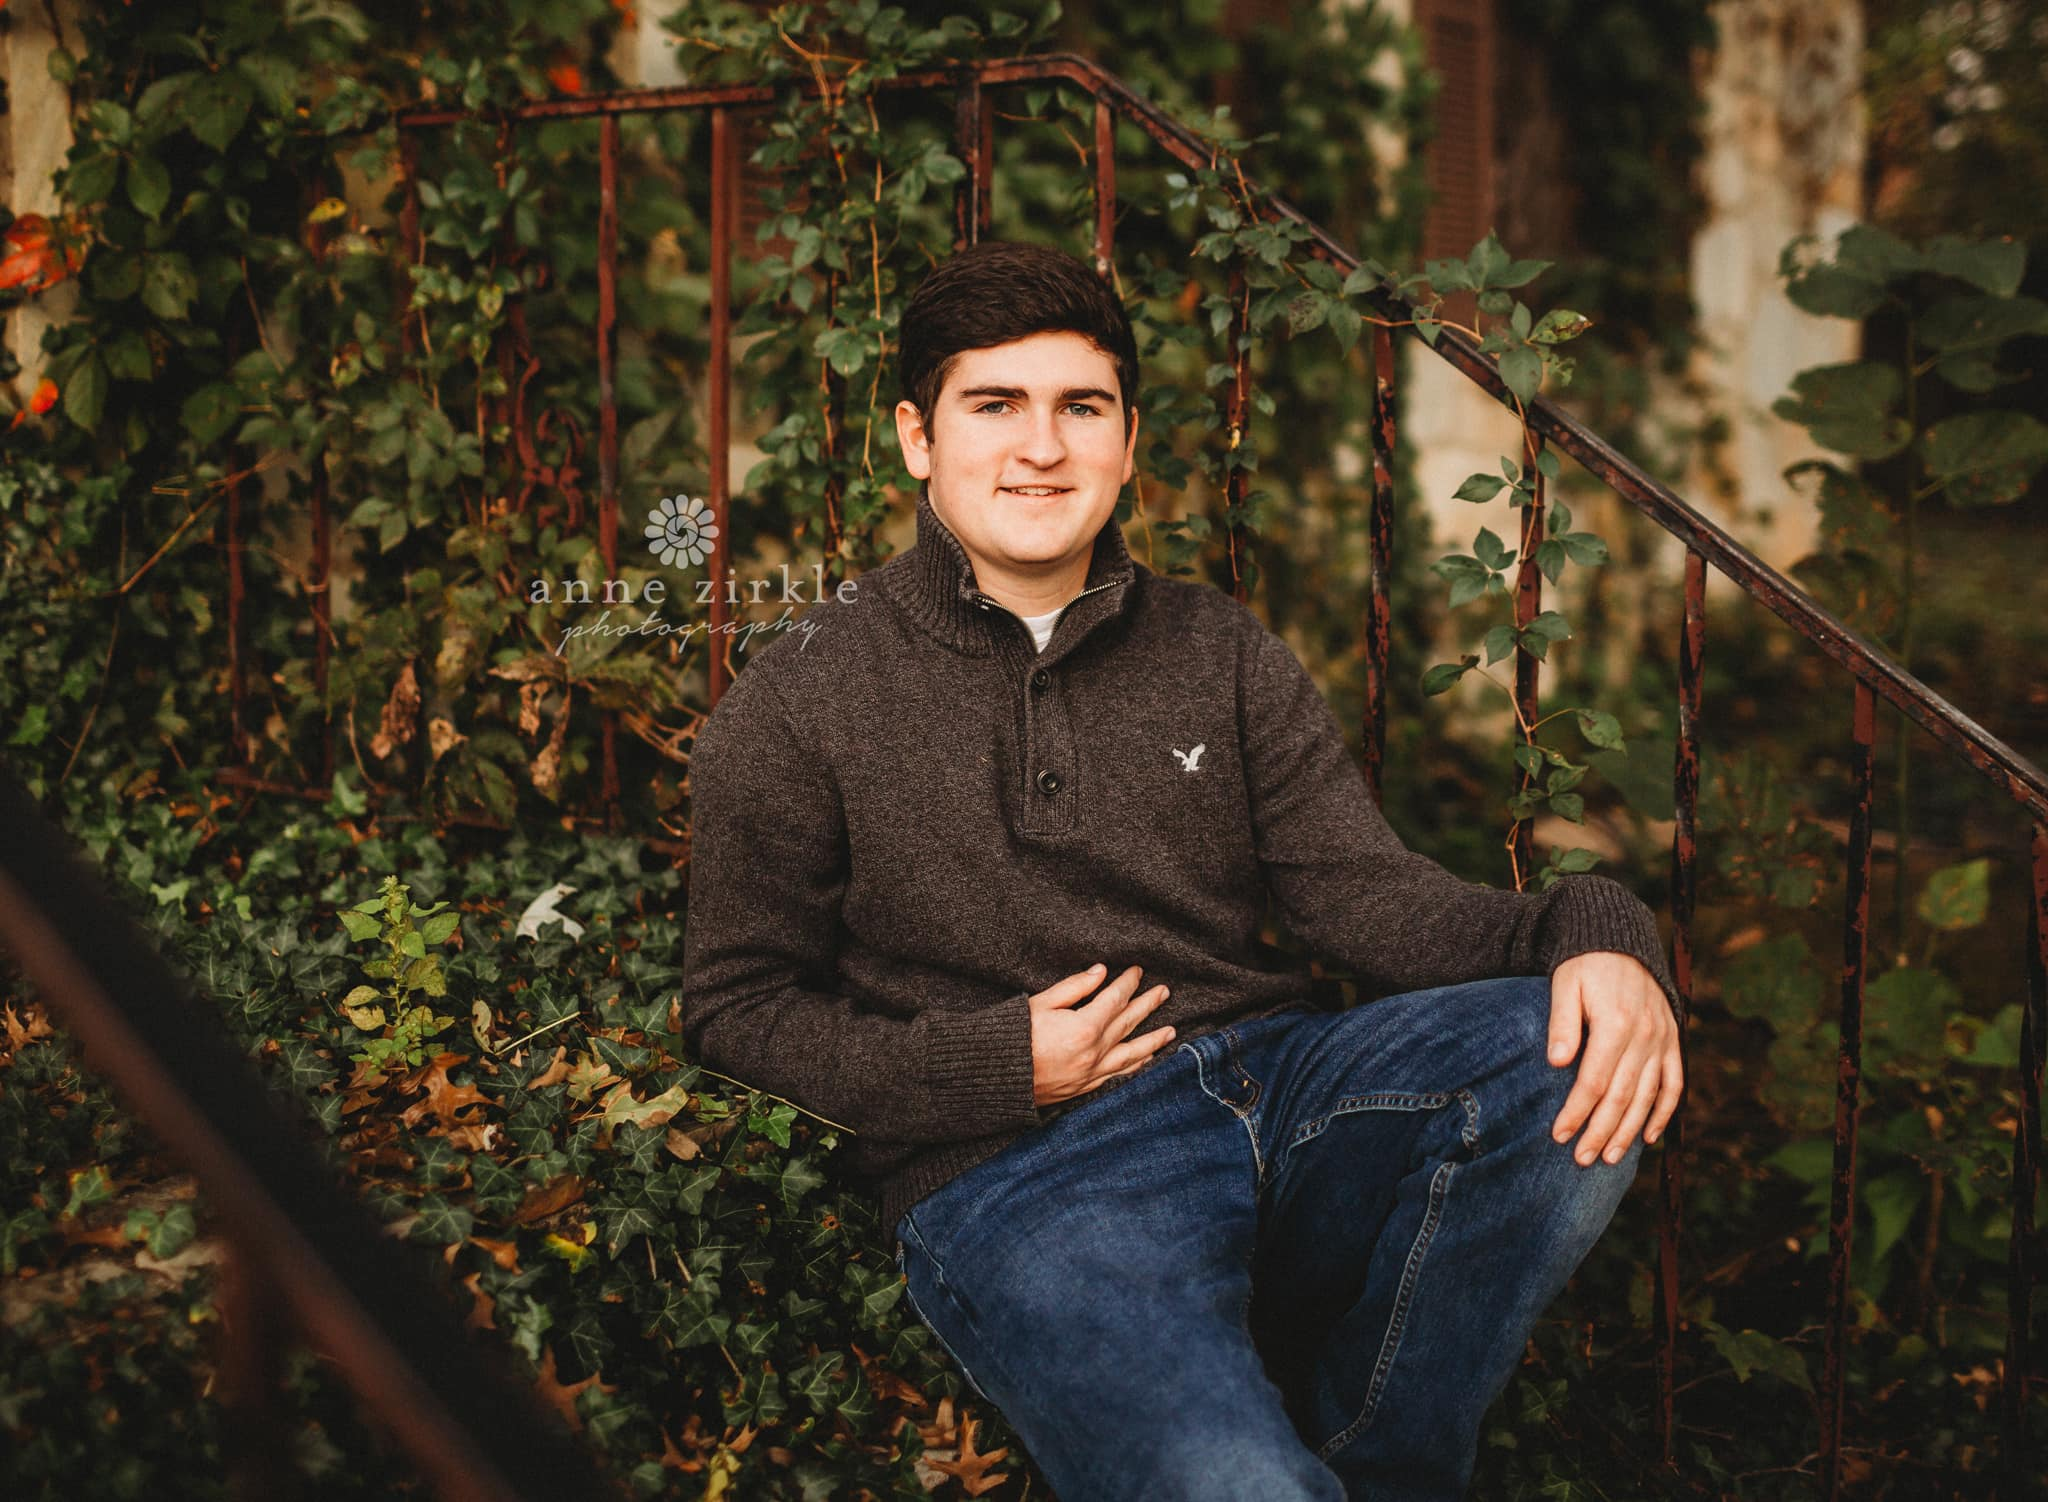 senior boy sitting on old stairs covered in ivy #mooresville #northcarolina #davidson #lakenorman #southiredell #pinelakeprep #highschool #highschoolsenior #highschoolseniors #seniors